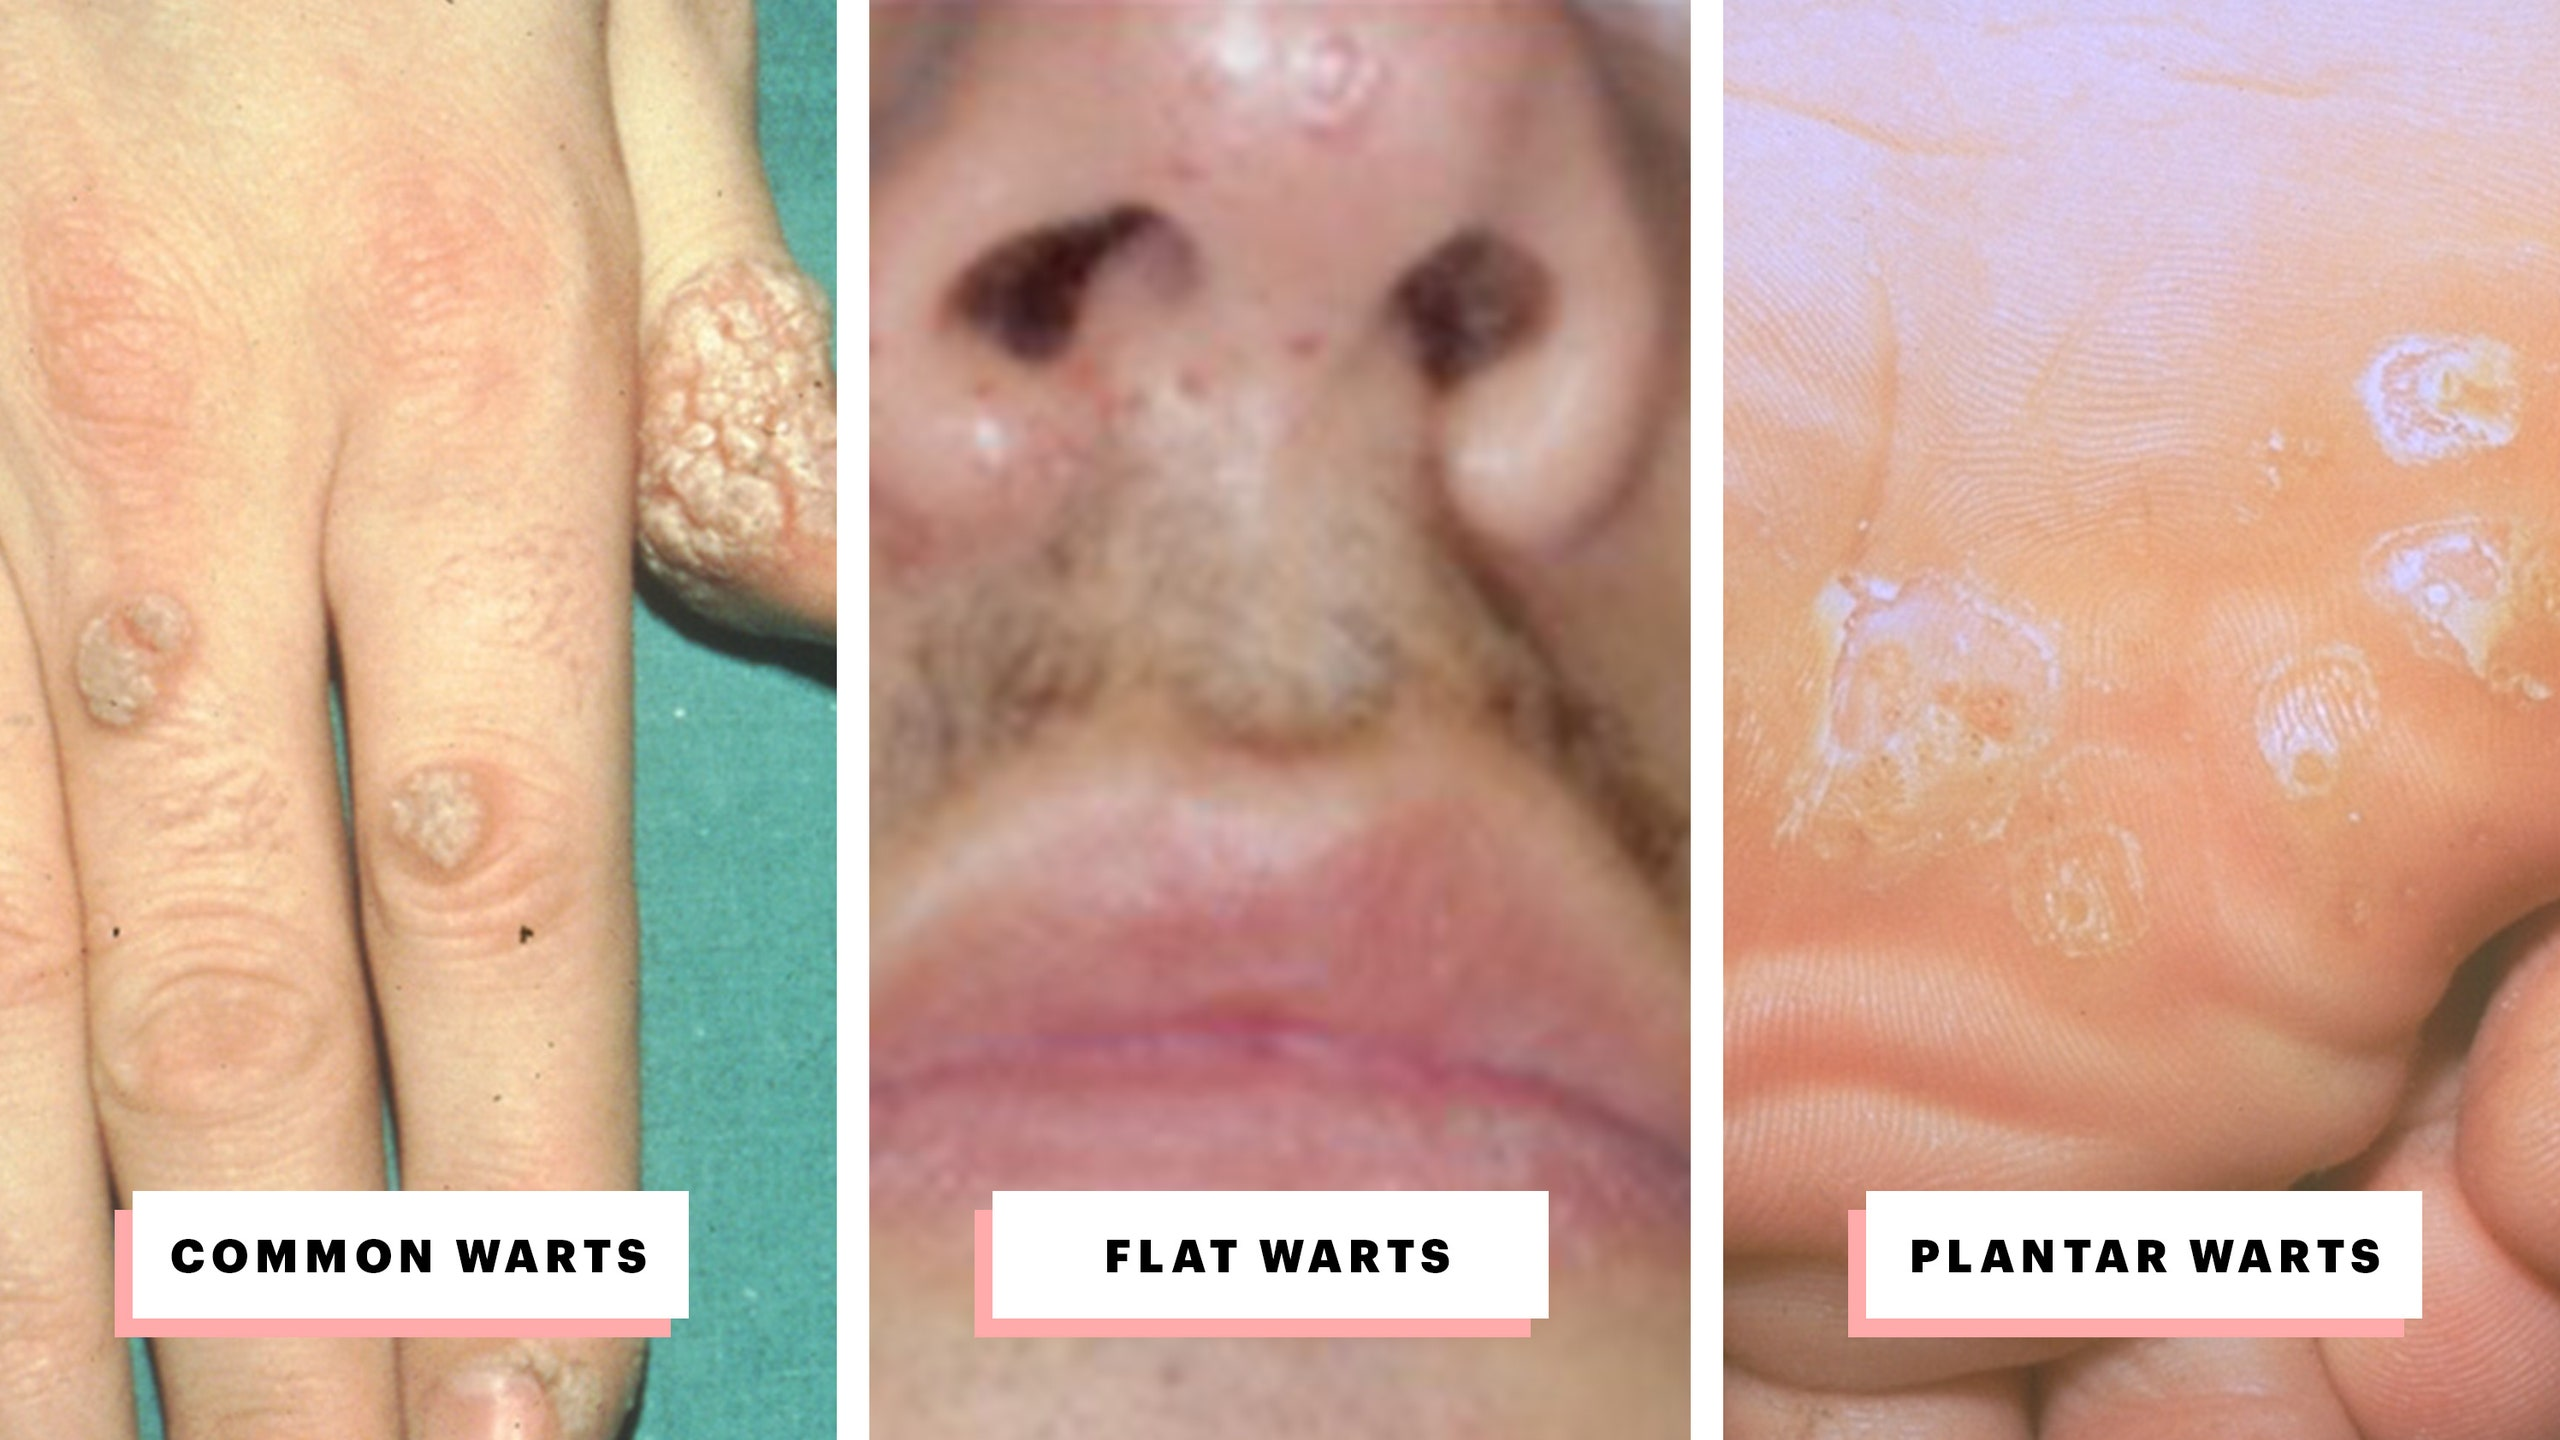 Warts medical treatment. Warts treatment medication